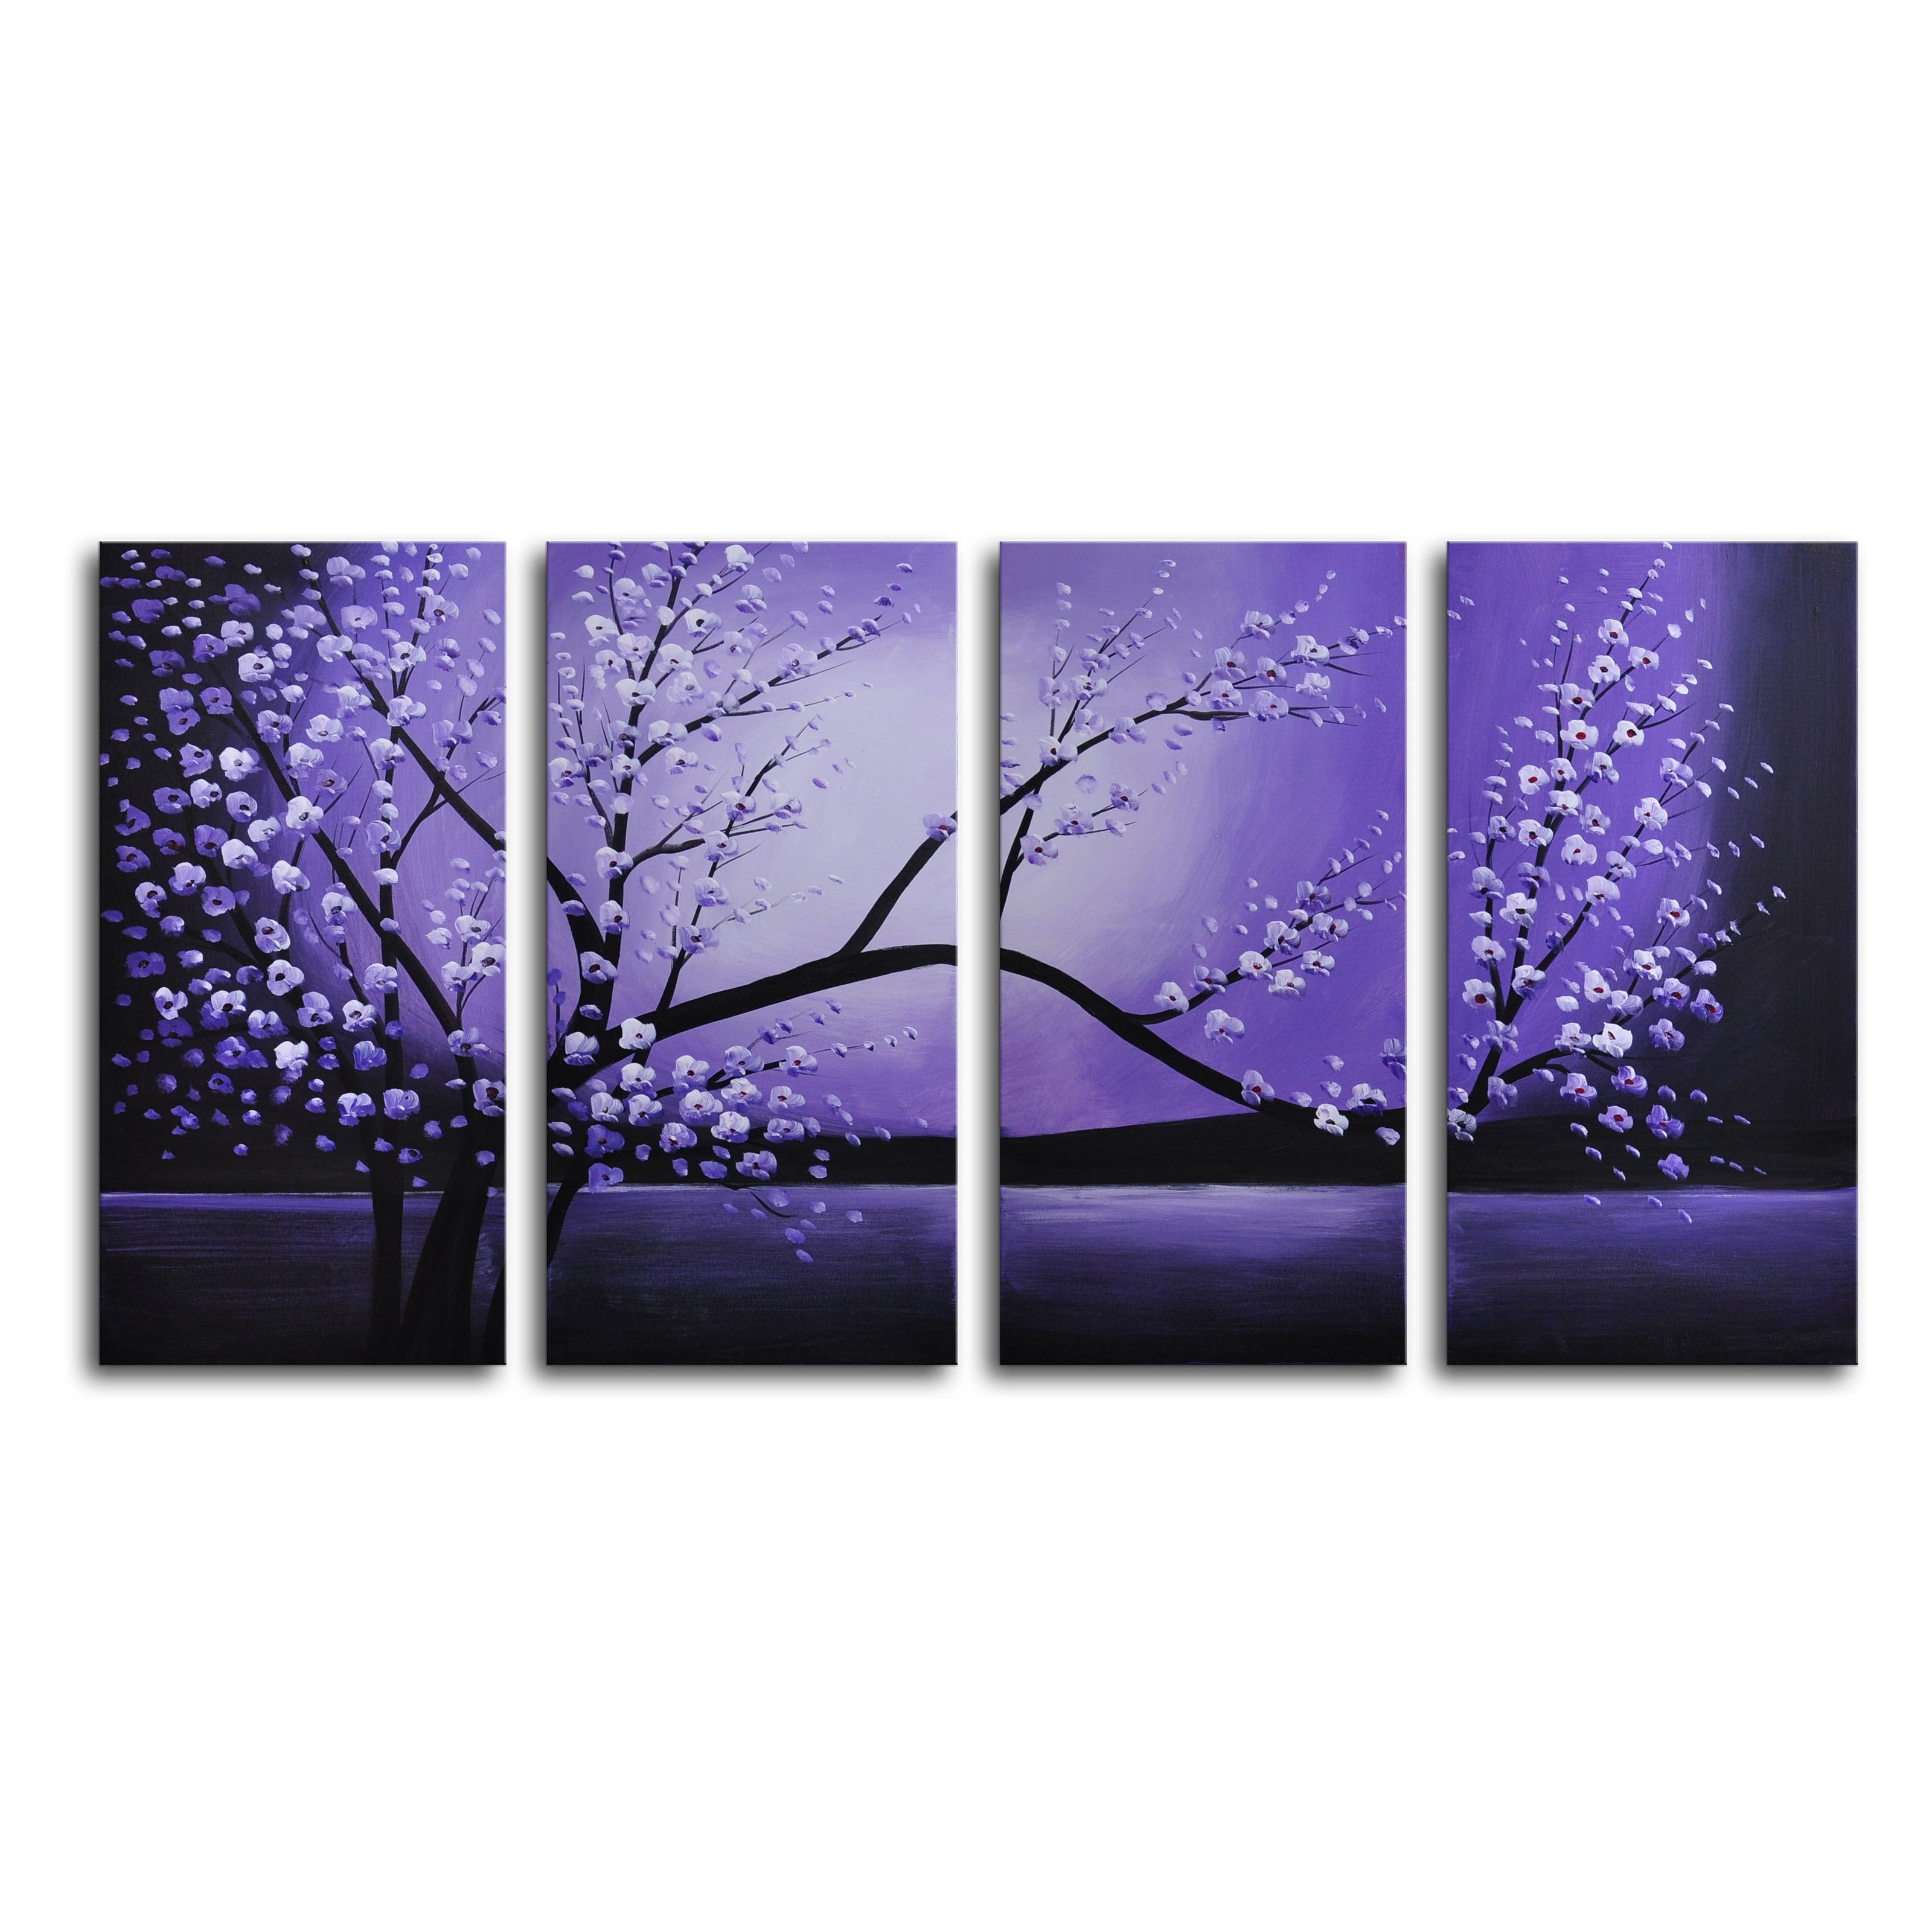 Winter Solstice 4-Piece Canvas Wall Art - 48W x 24H in.